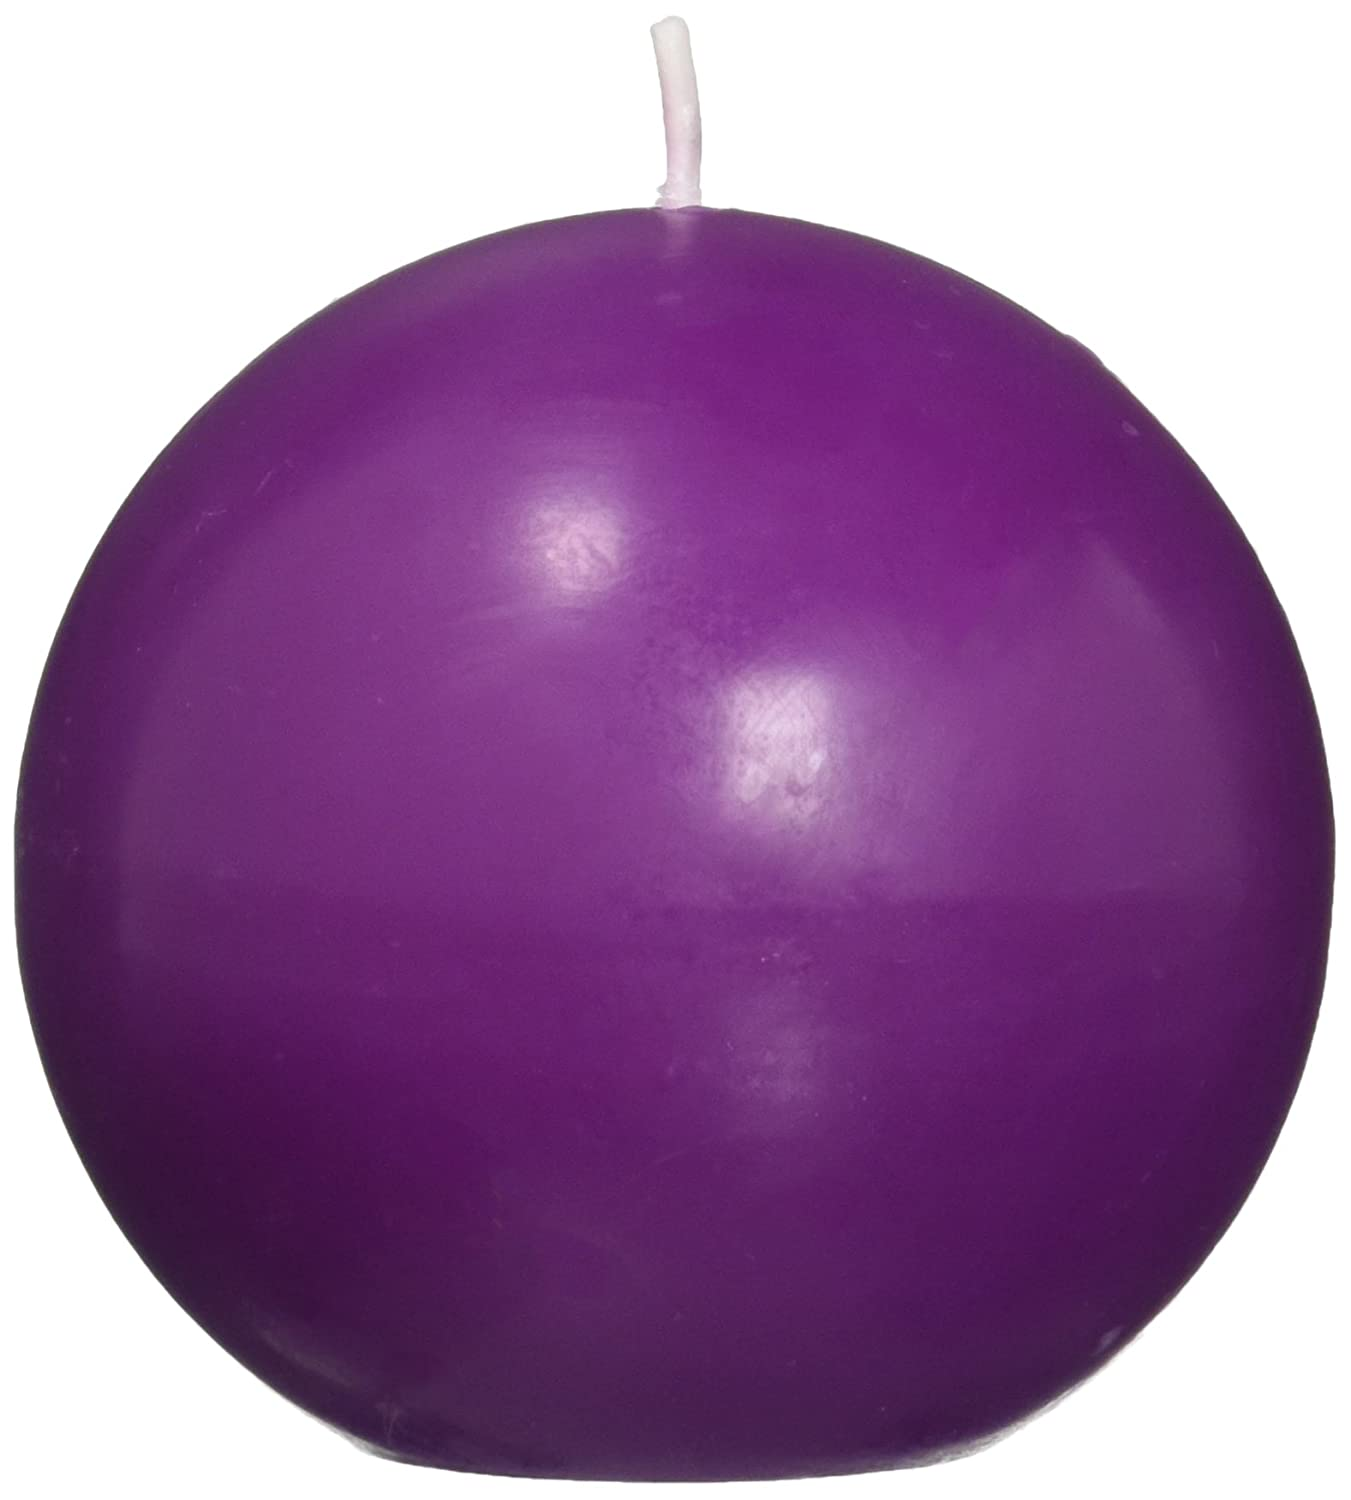 Zest Candle 6-Piece Ball Candles, 3-Inch, Purple CBZ-023